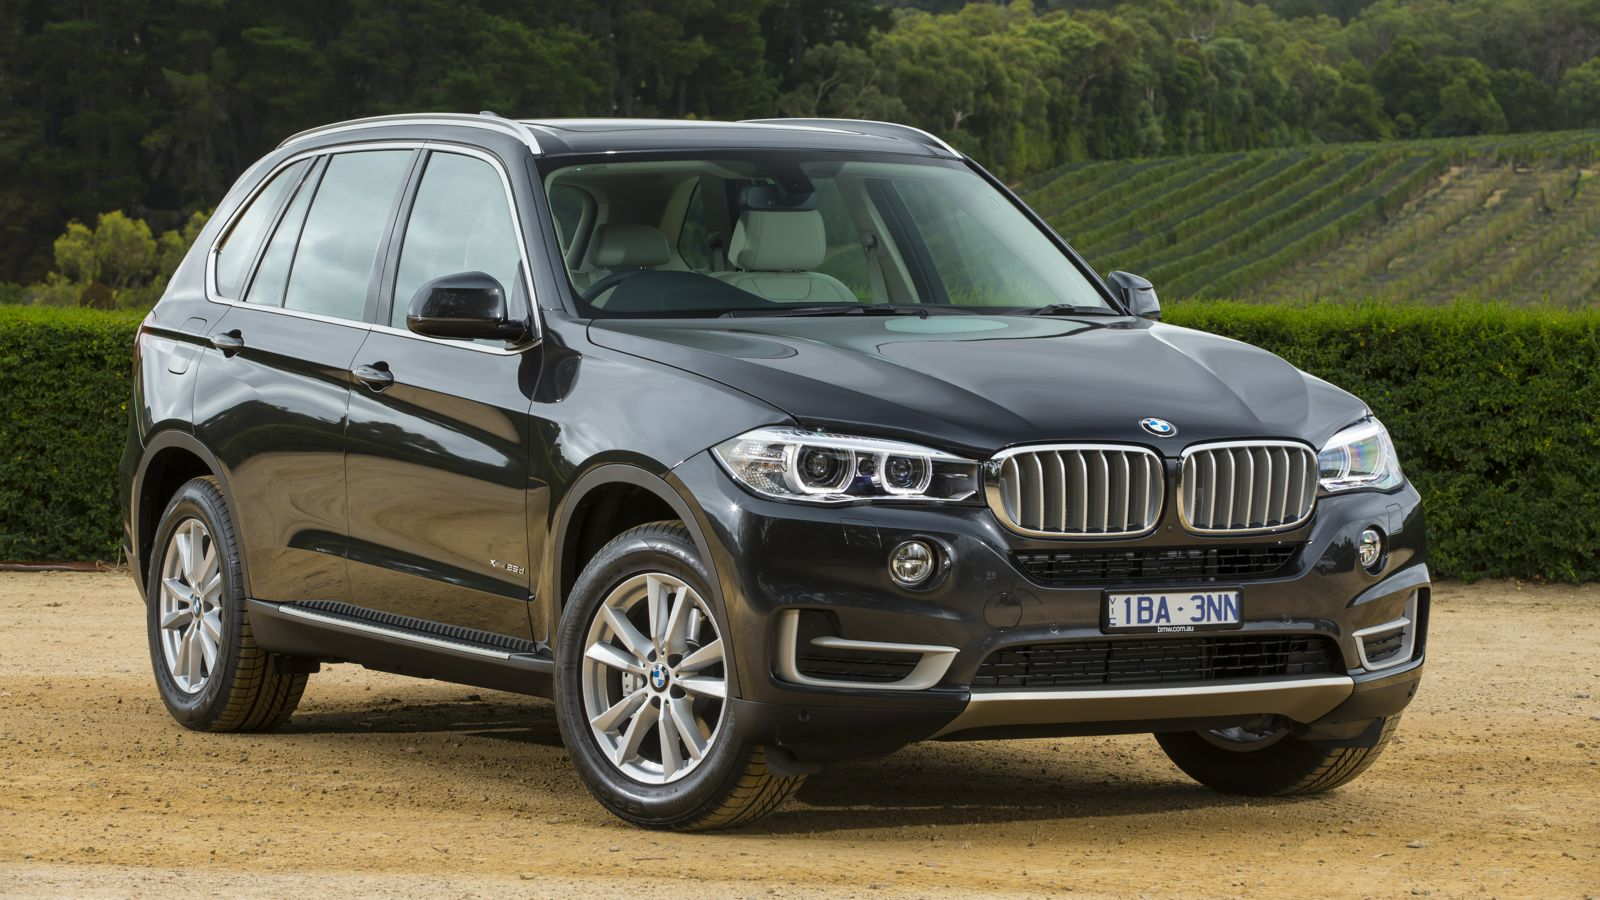 bmw x5 review xdrive25d and sdrive25d caradvice. Black Bedroom Furniture Sets. Home Design Ideas